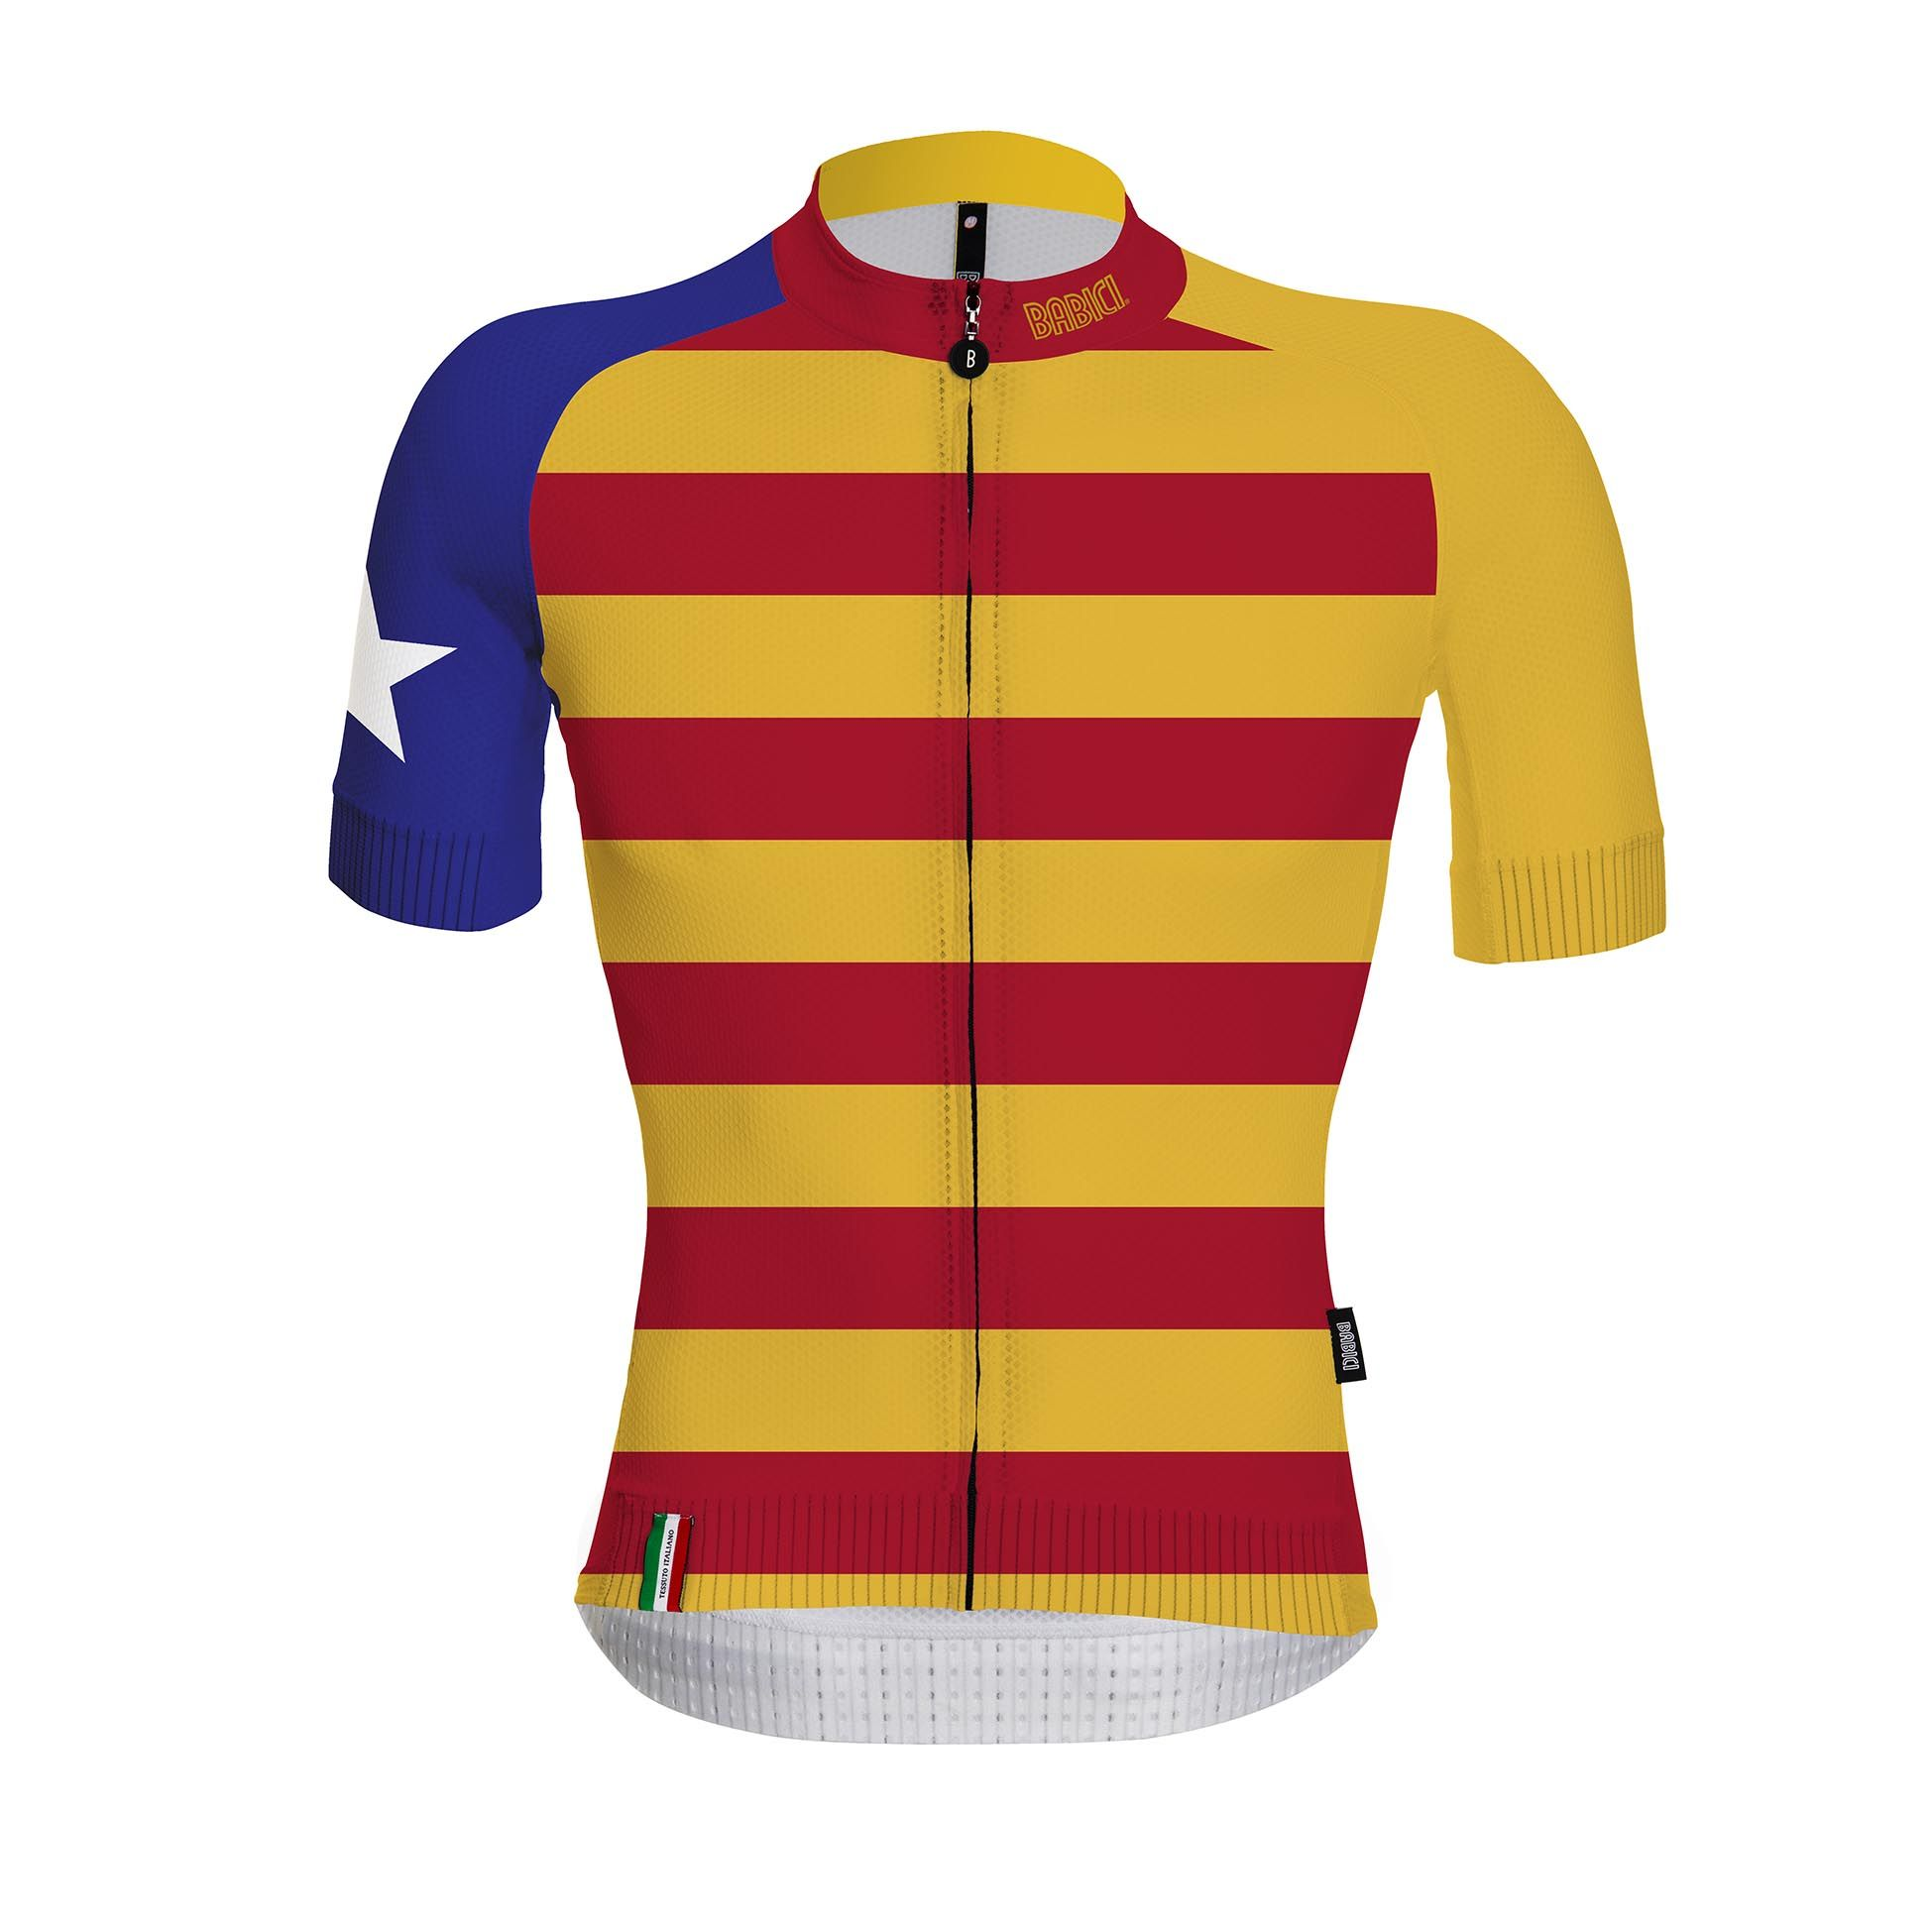 Catalonia jersey by Babici  df557559a